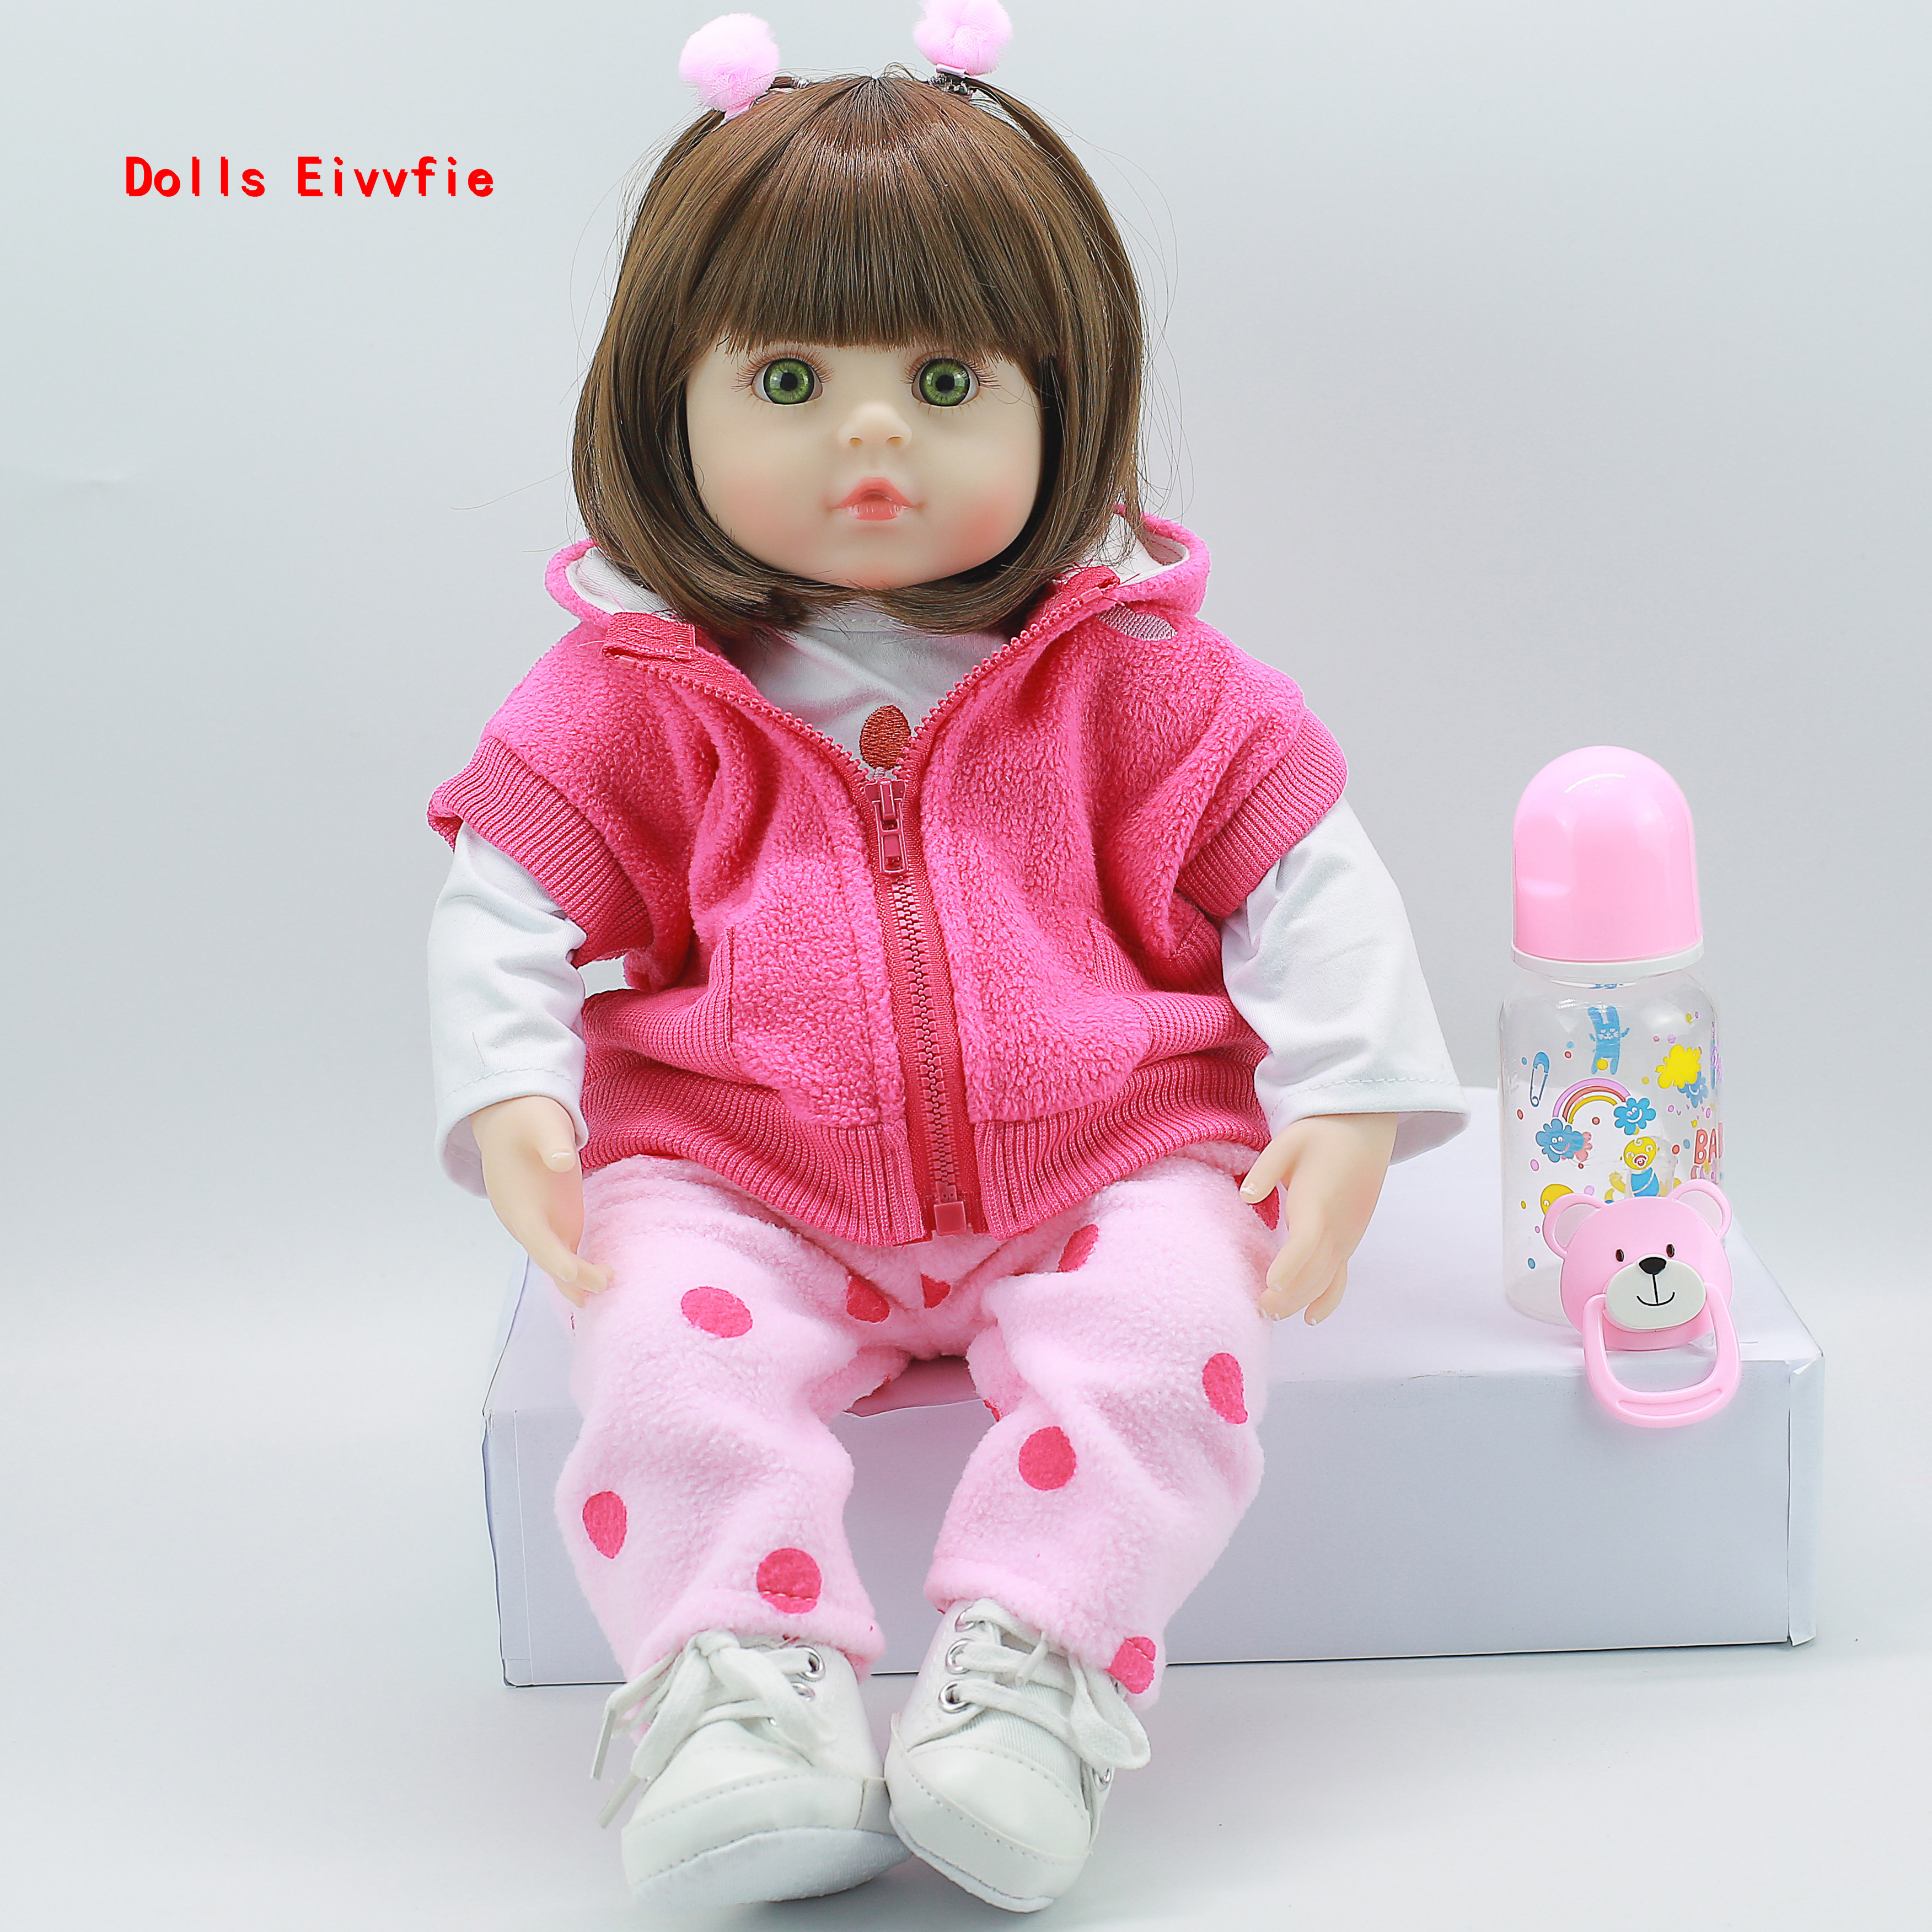 Silicone Reborn Dolls 47cm Alive Toddler Realistic Lifelike Real Girl Baby Doll